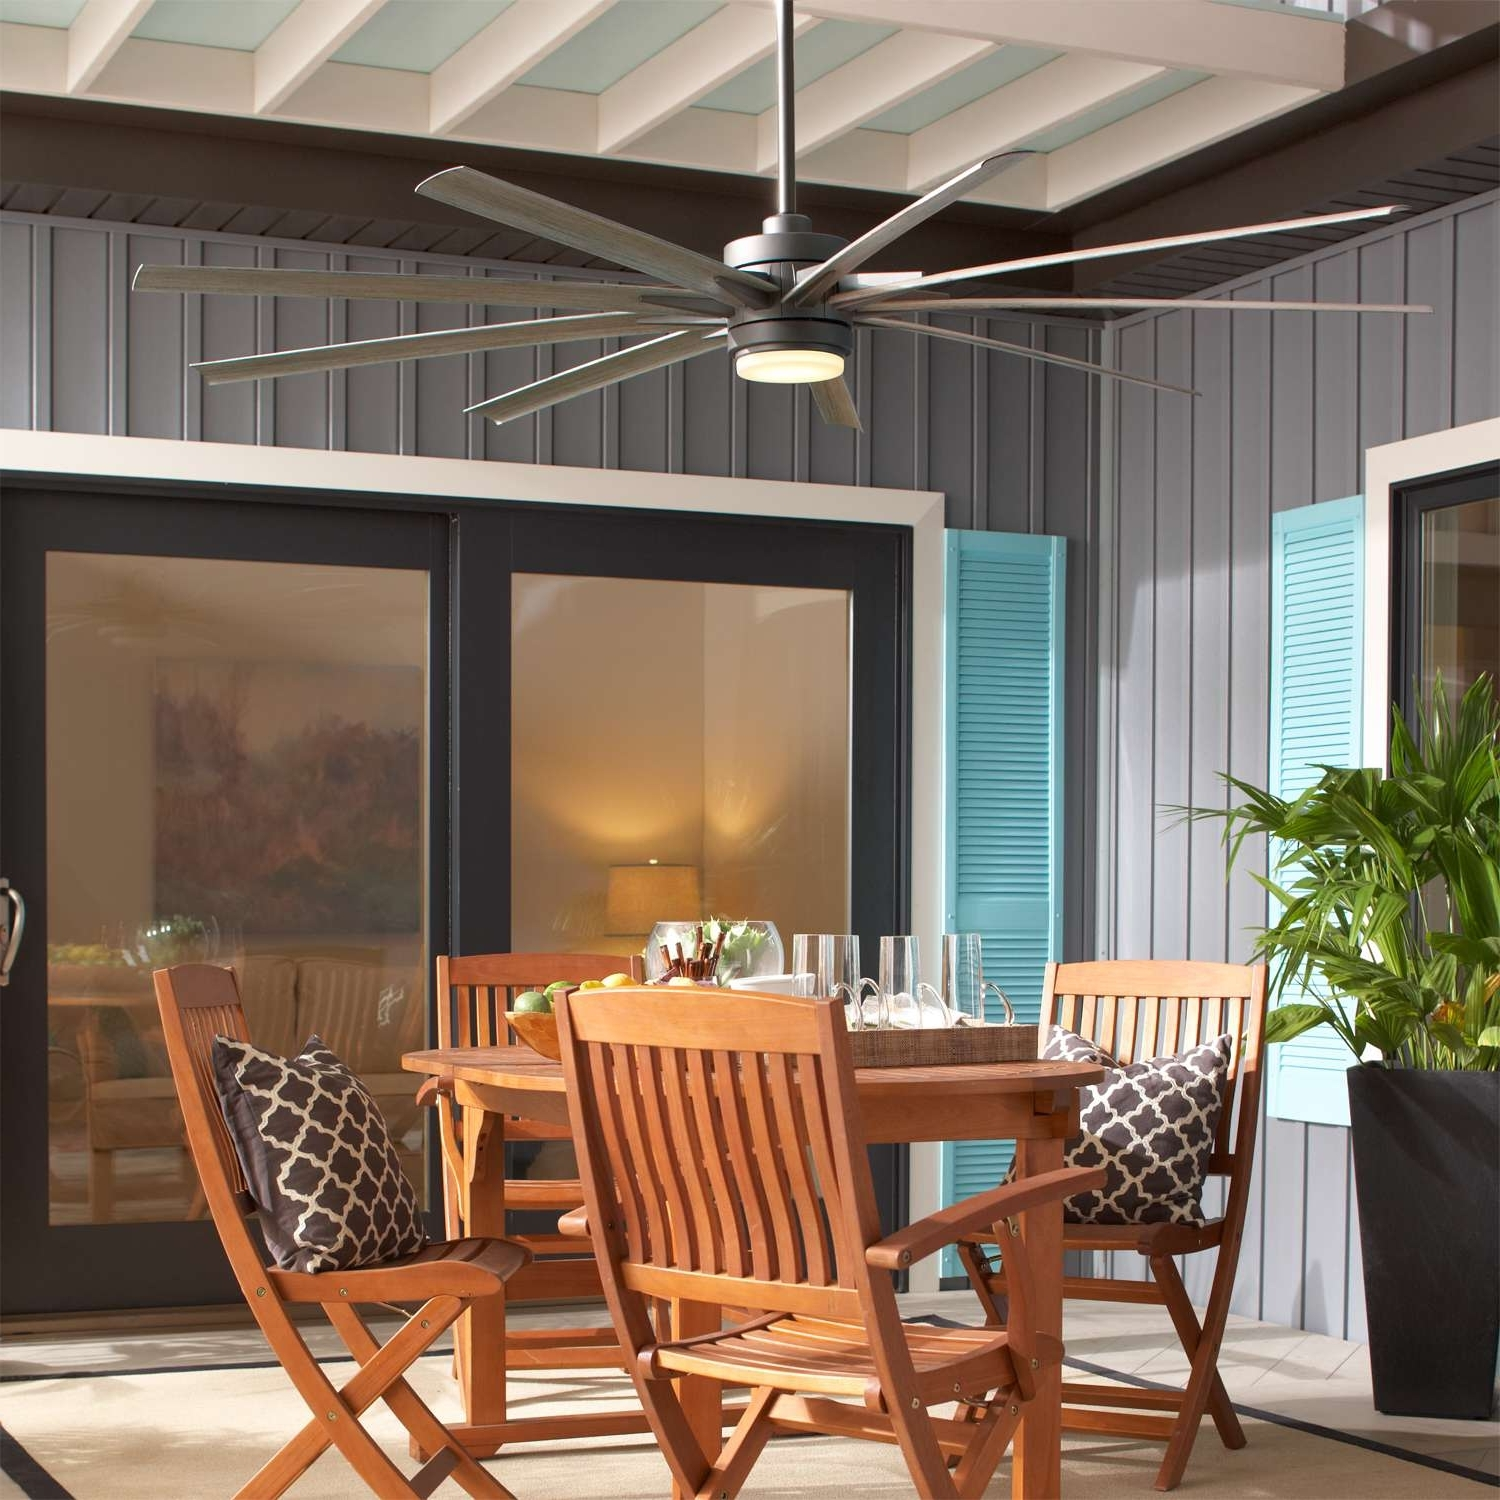 Outdoor Ceiling Fans For Screened Porches Inside Well Liked 4 Questions About Outdoor Ceiling Fans (Gallery 5 of 20)